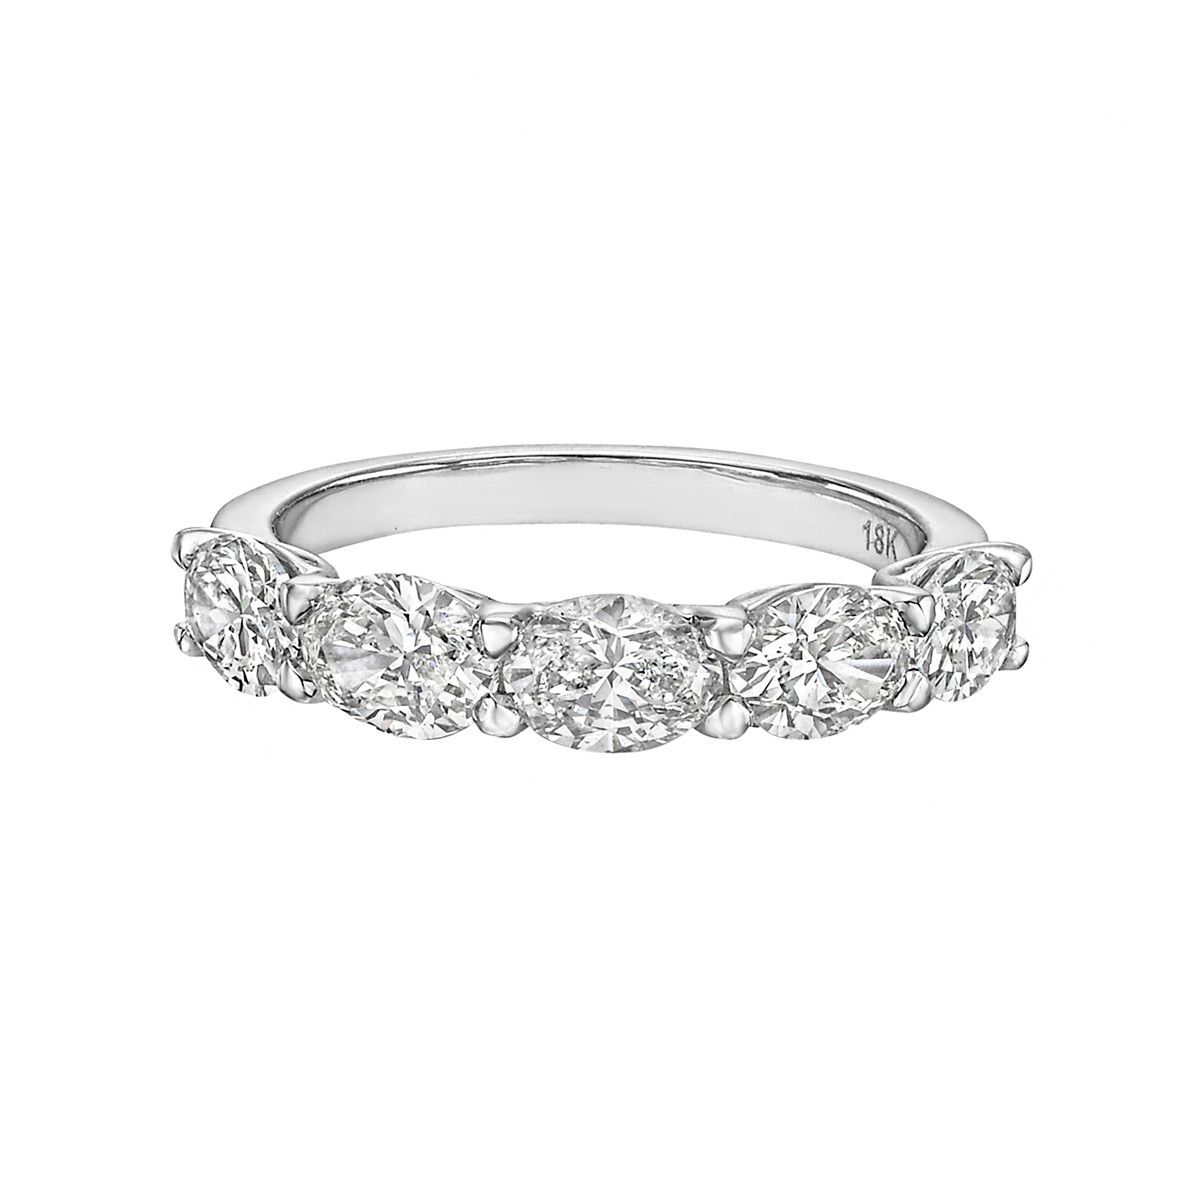 Oval-Cut Diamond 5-Stone Band Ring